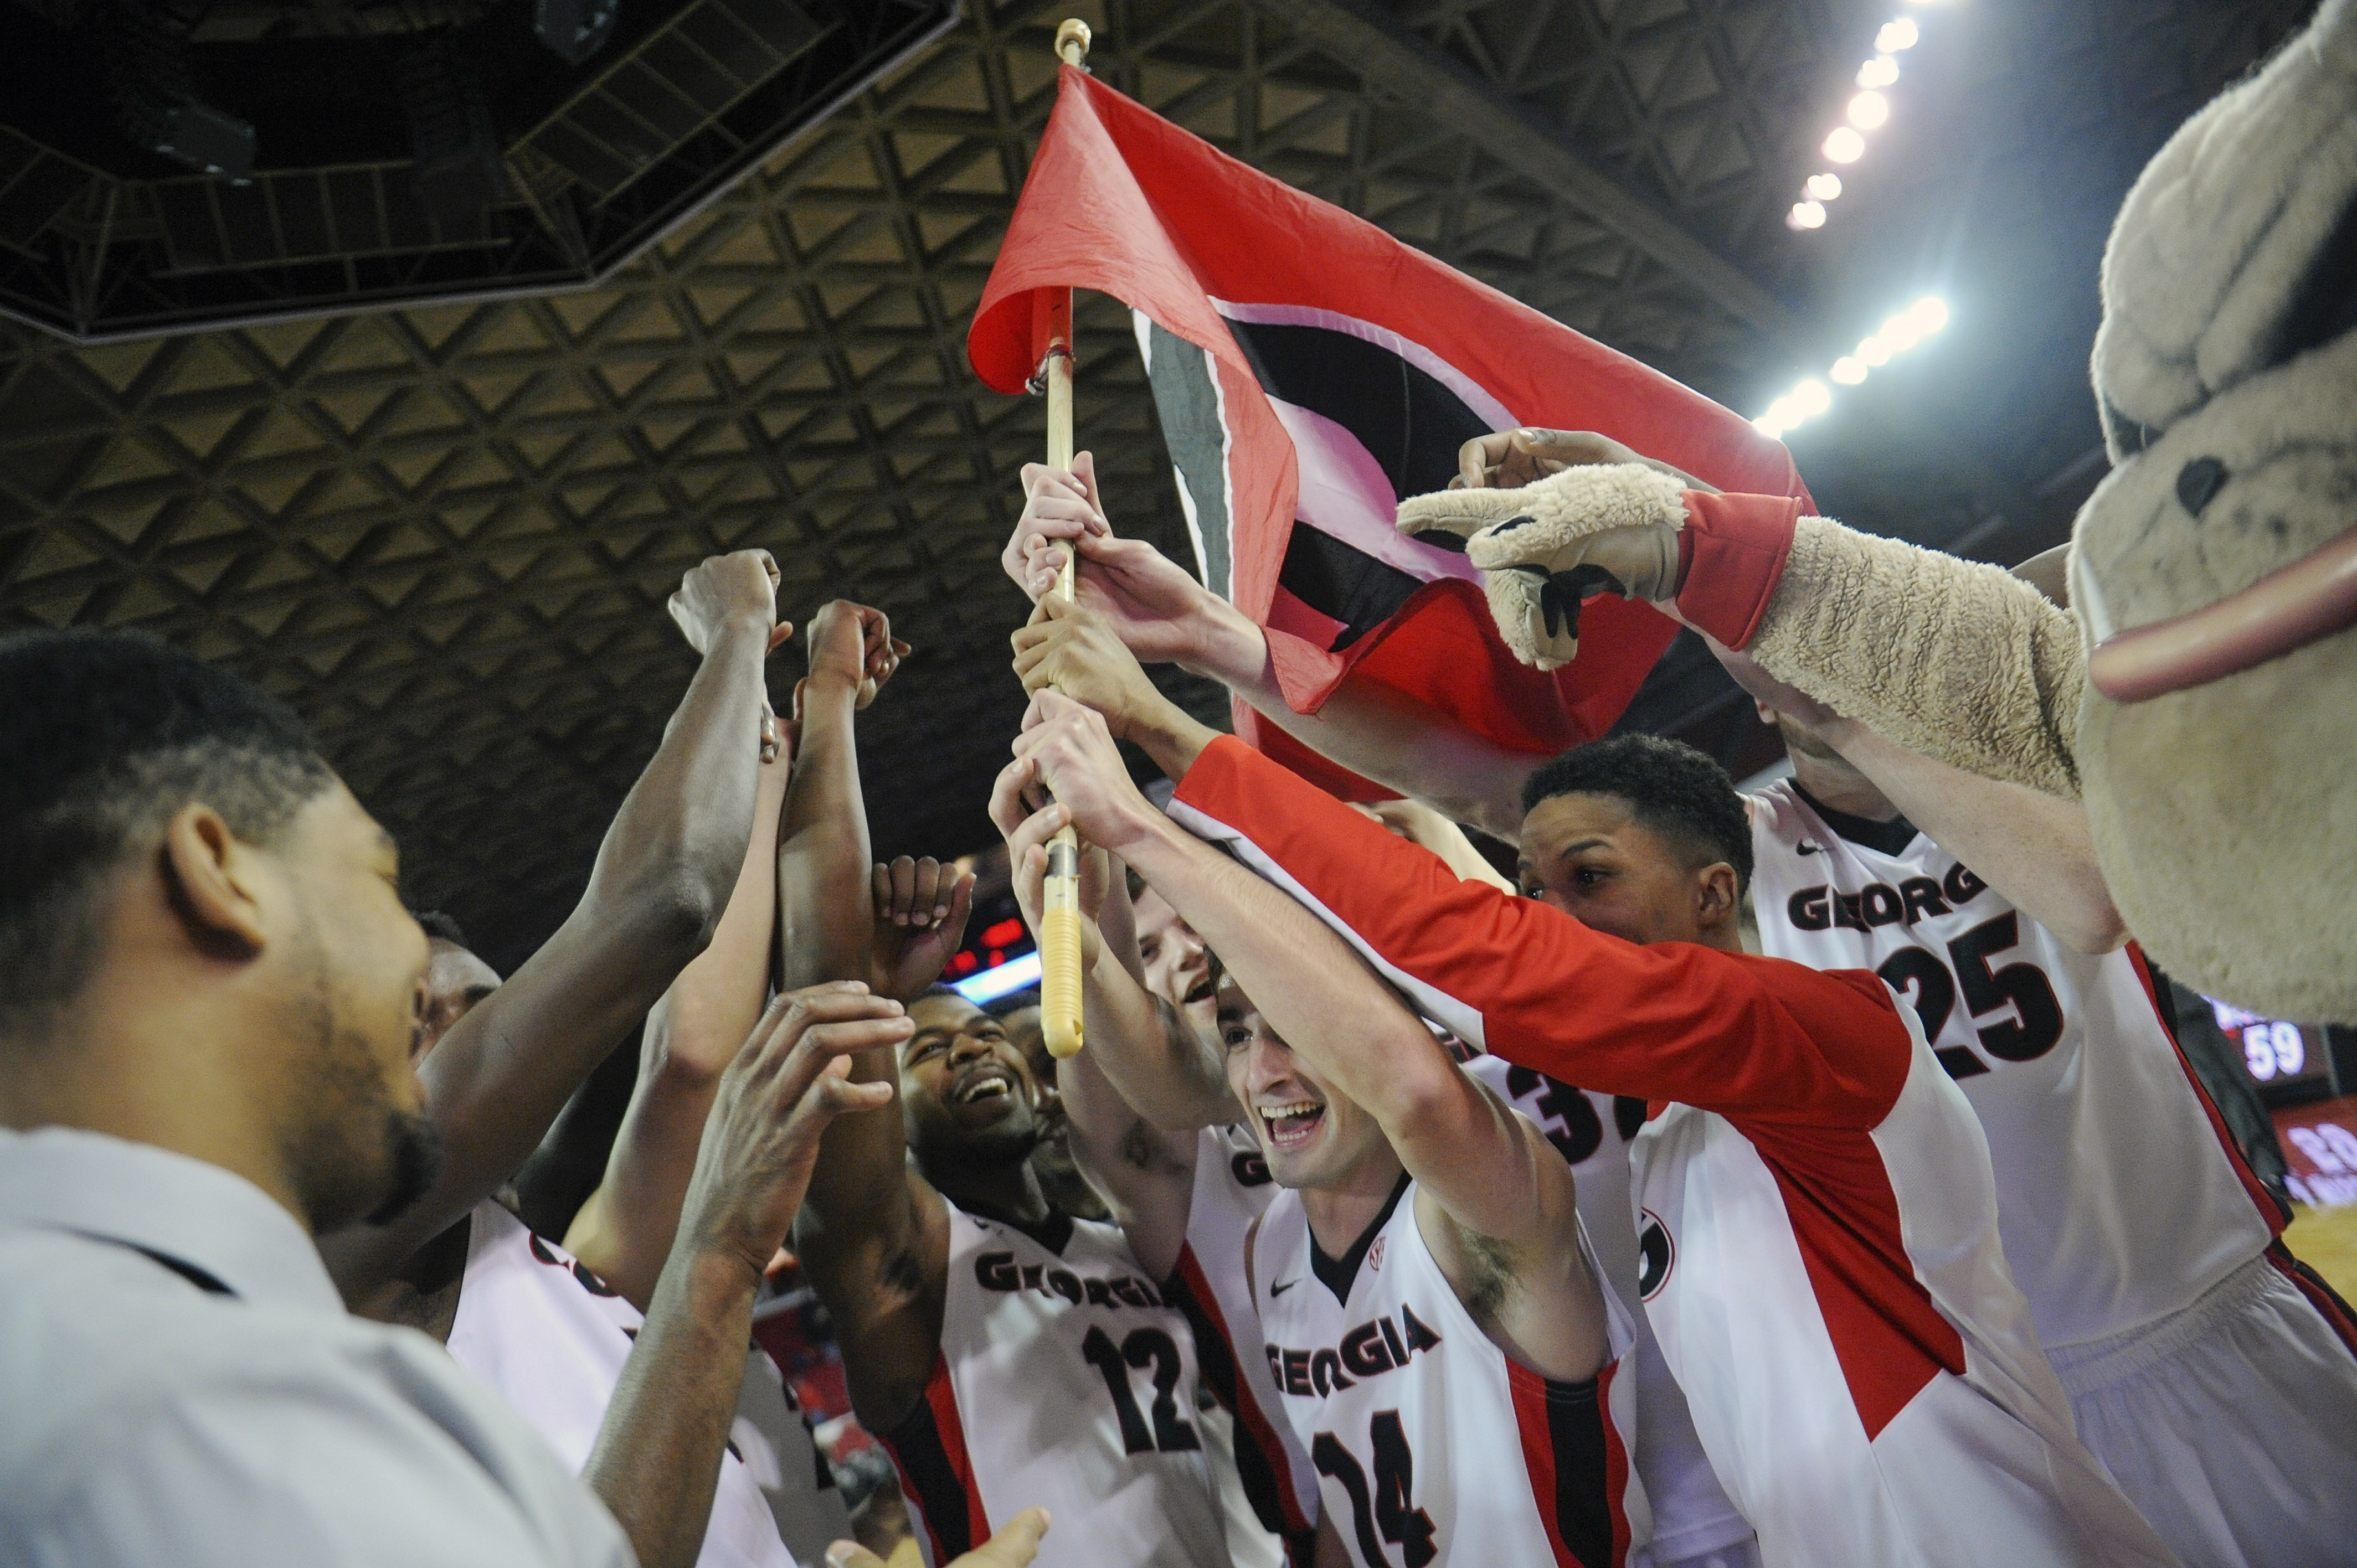 Georgia players celebrate after the second half of an NCAA college basketball game between Georgia and Missouri on Wednesday, Jan. 6, 2016, in Athens, Ga. (AJ Reynolds/Athens Banner-Herald via AP) MAGS OUT; MANDATORY CREDIT